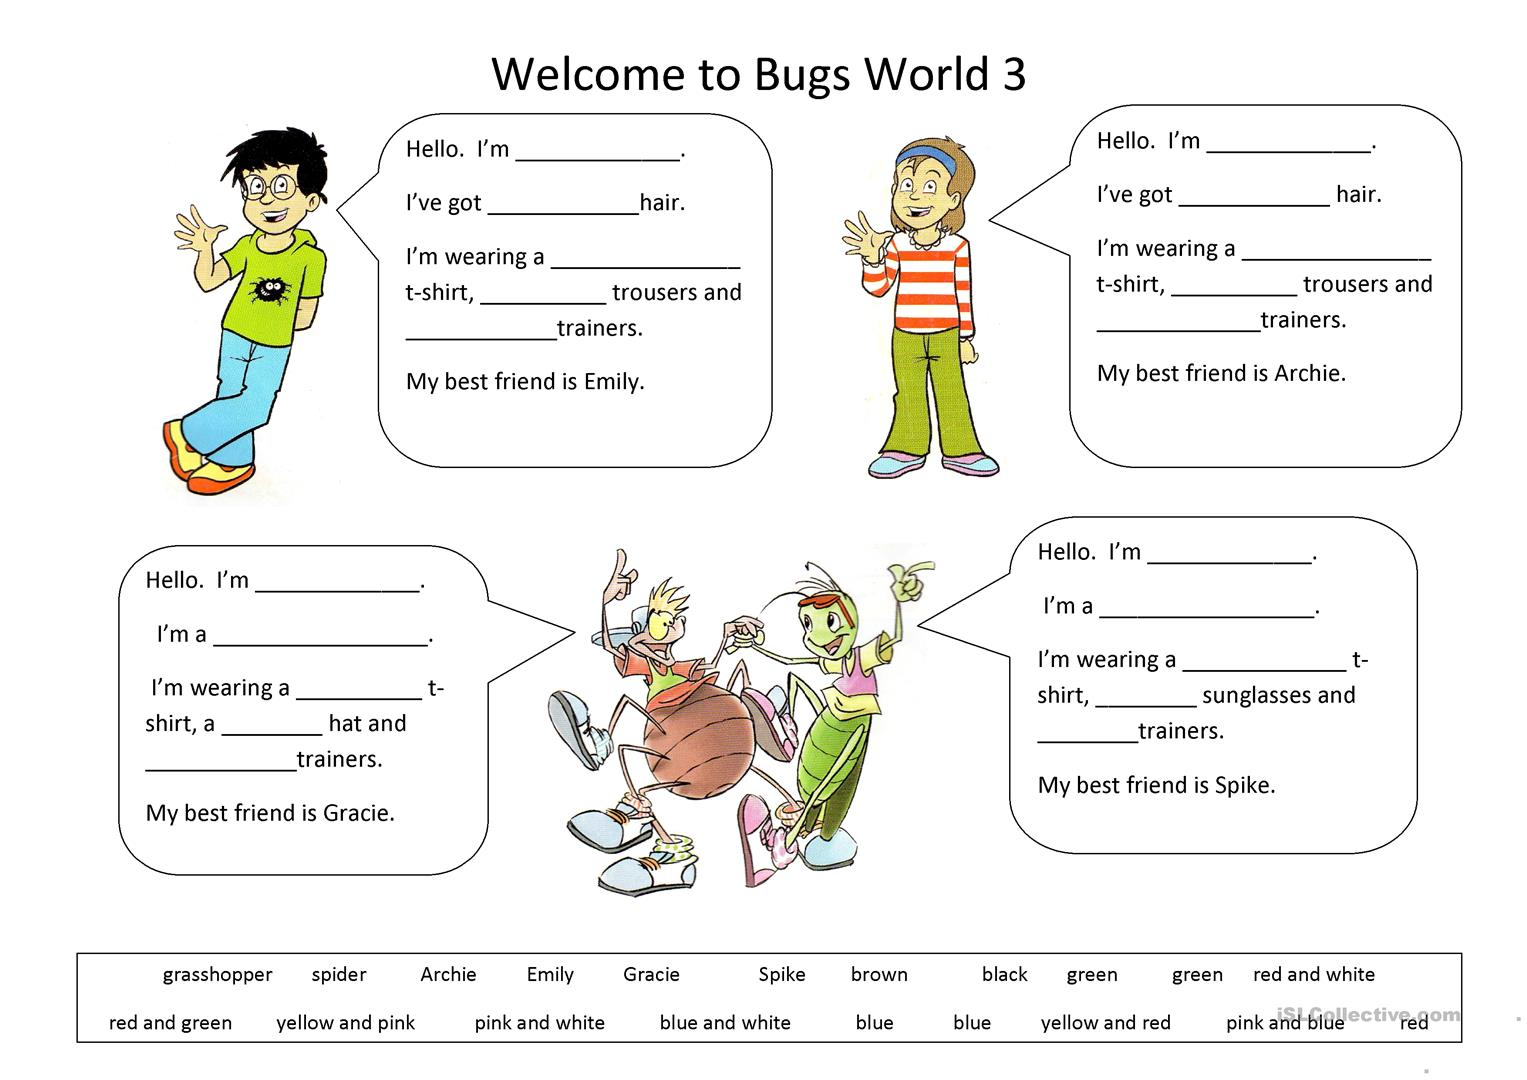 Welcome To Bugs World 3 Worksheet